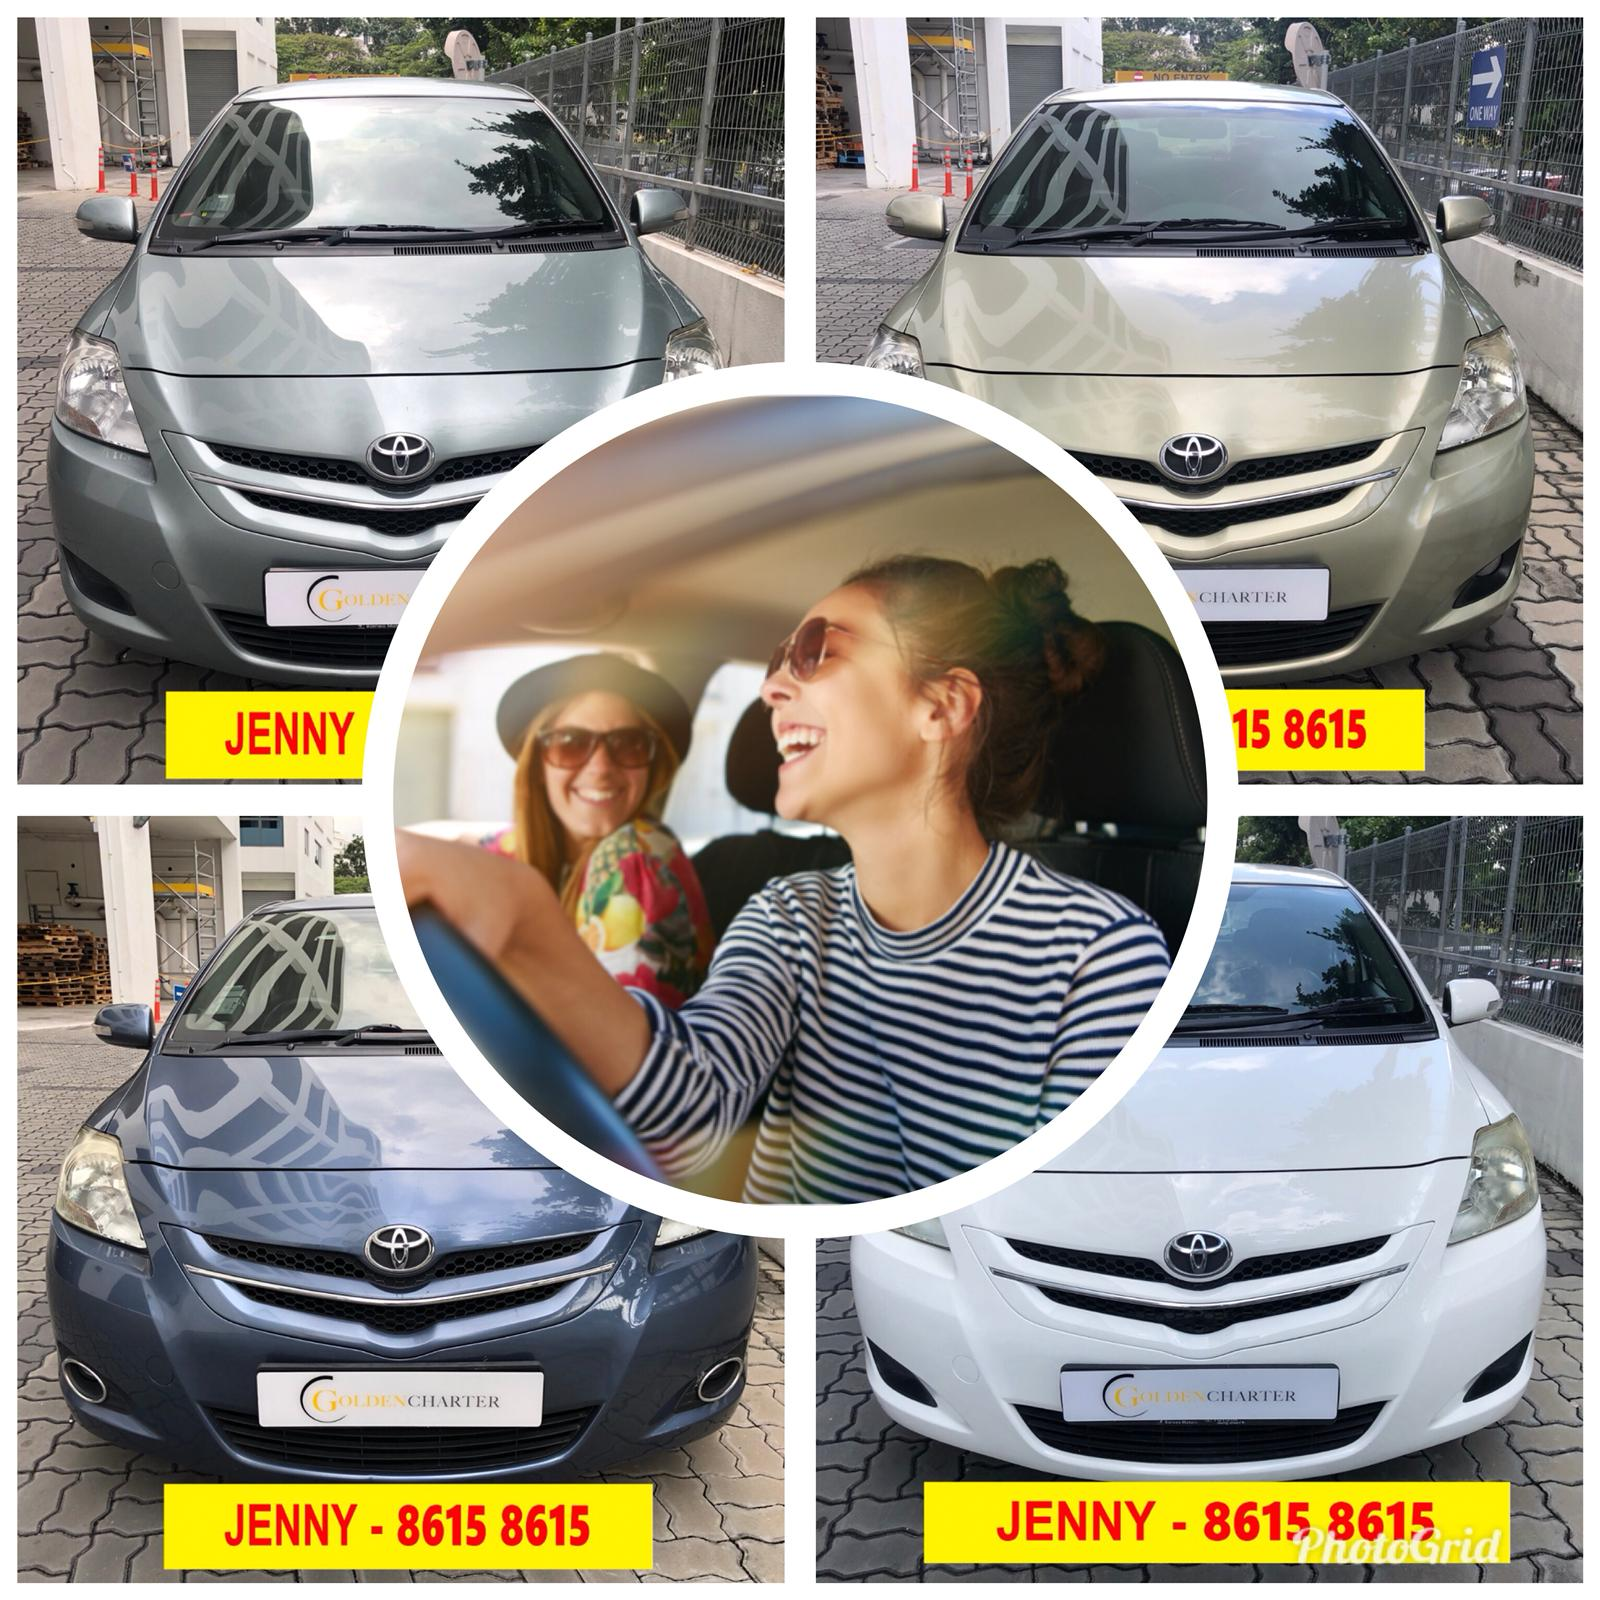 GOJEK INCENTIVE REBATE_budget cars for rent!!!less than $50 per day~~~GOOD CONDITION CARS For LONG TERM PHV GRAB OR PERSONAL USE